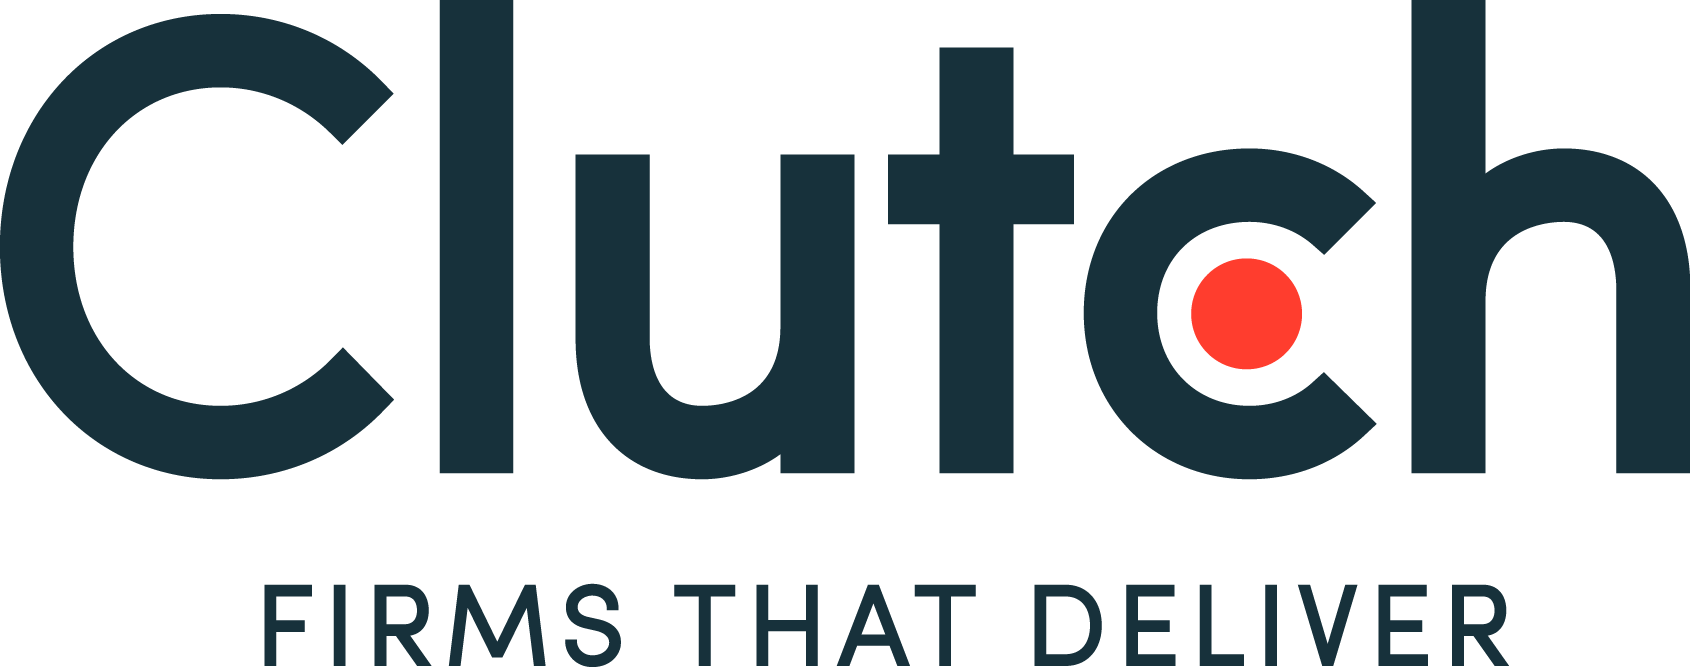 clutch-firms-that-deliver-logo